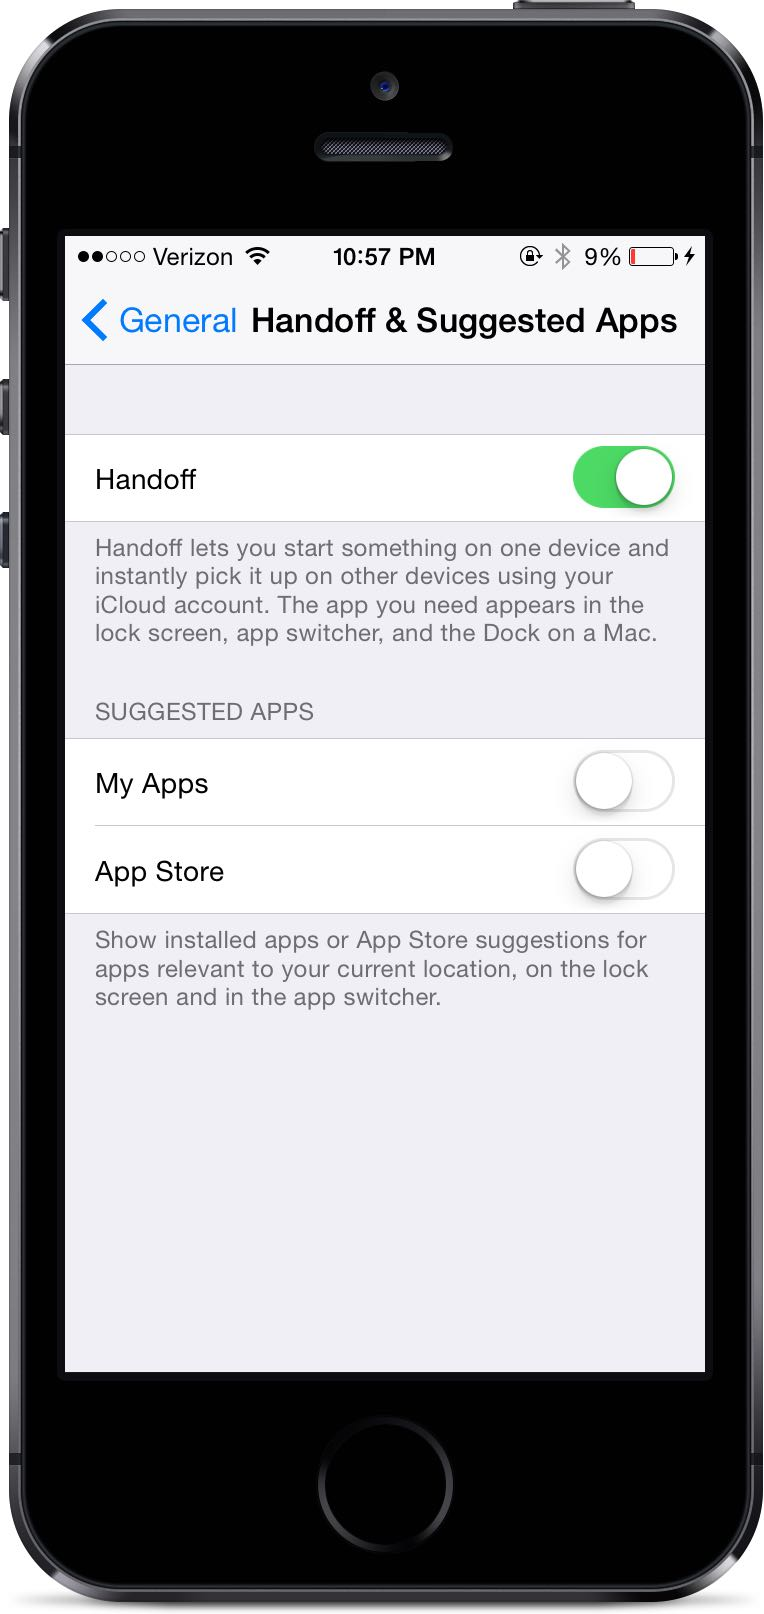 Handoff & Suggested Apps